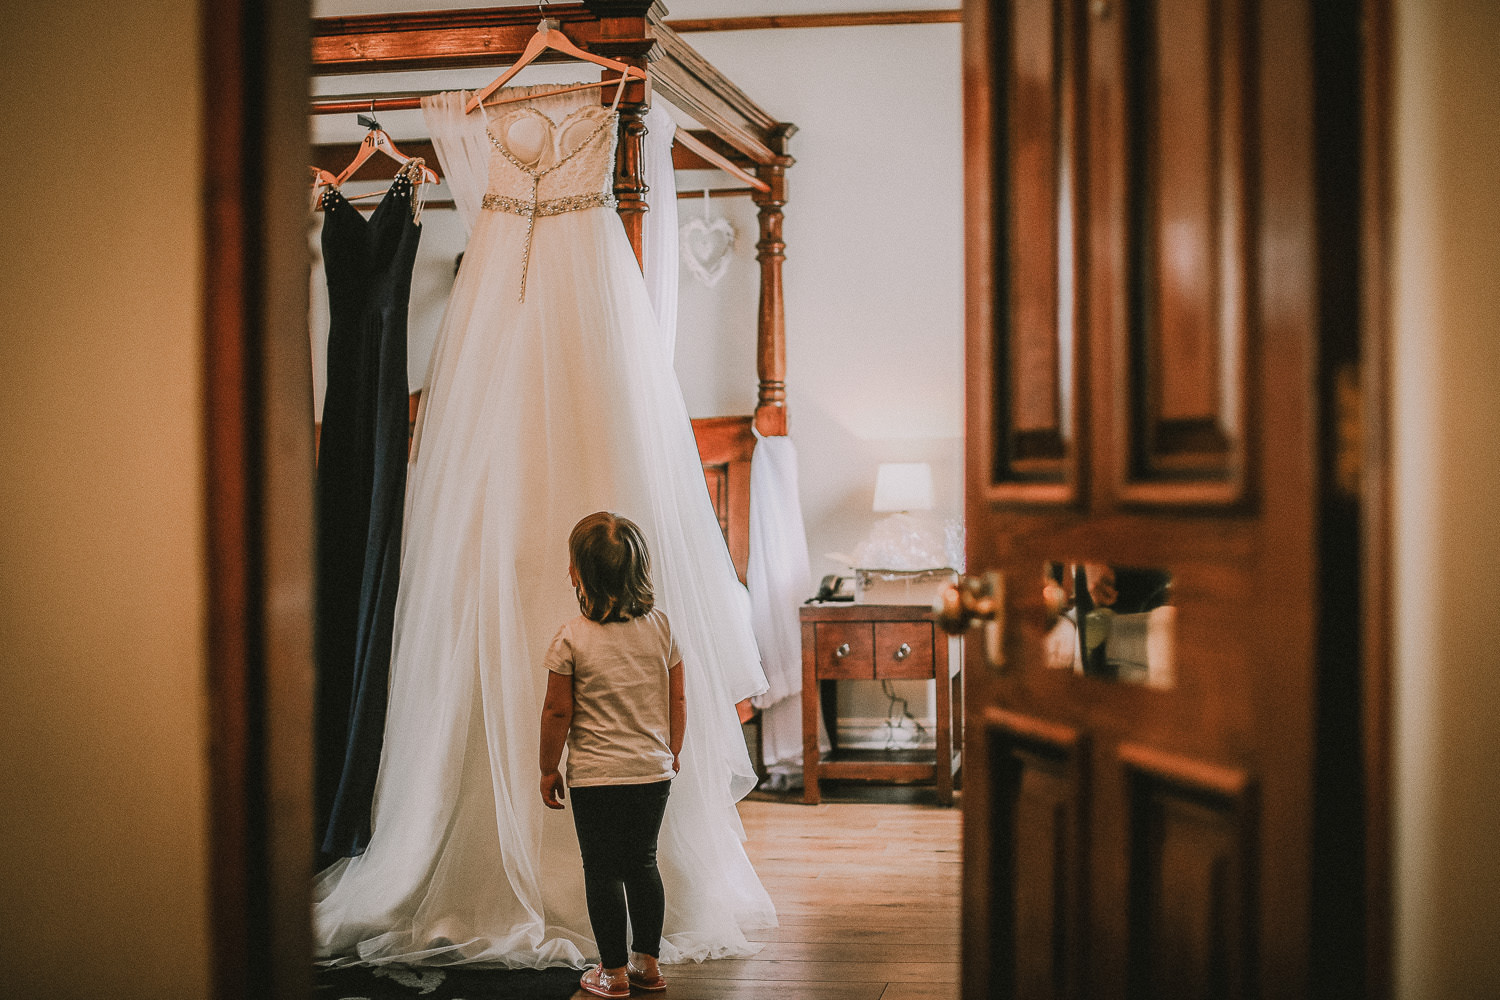 How much is a wedding photographer. Little girl look at wedding dress